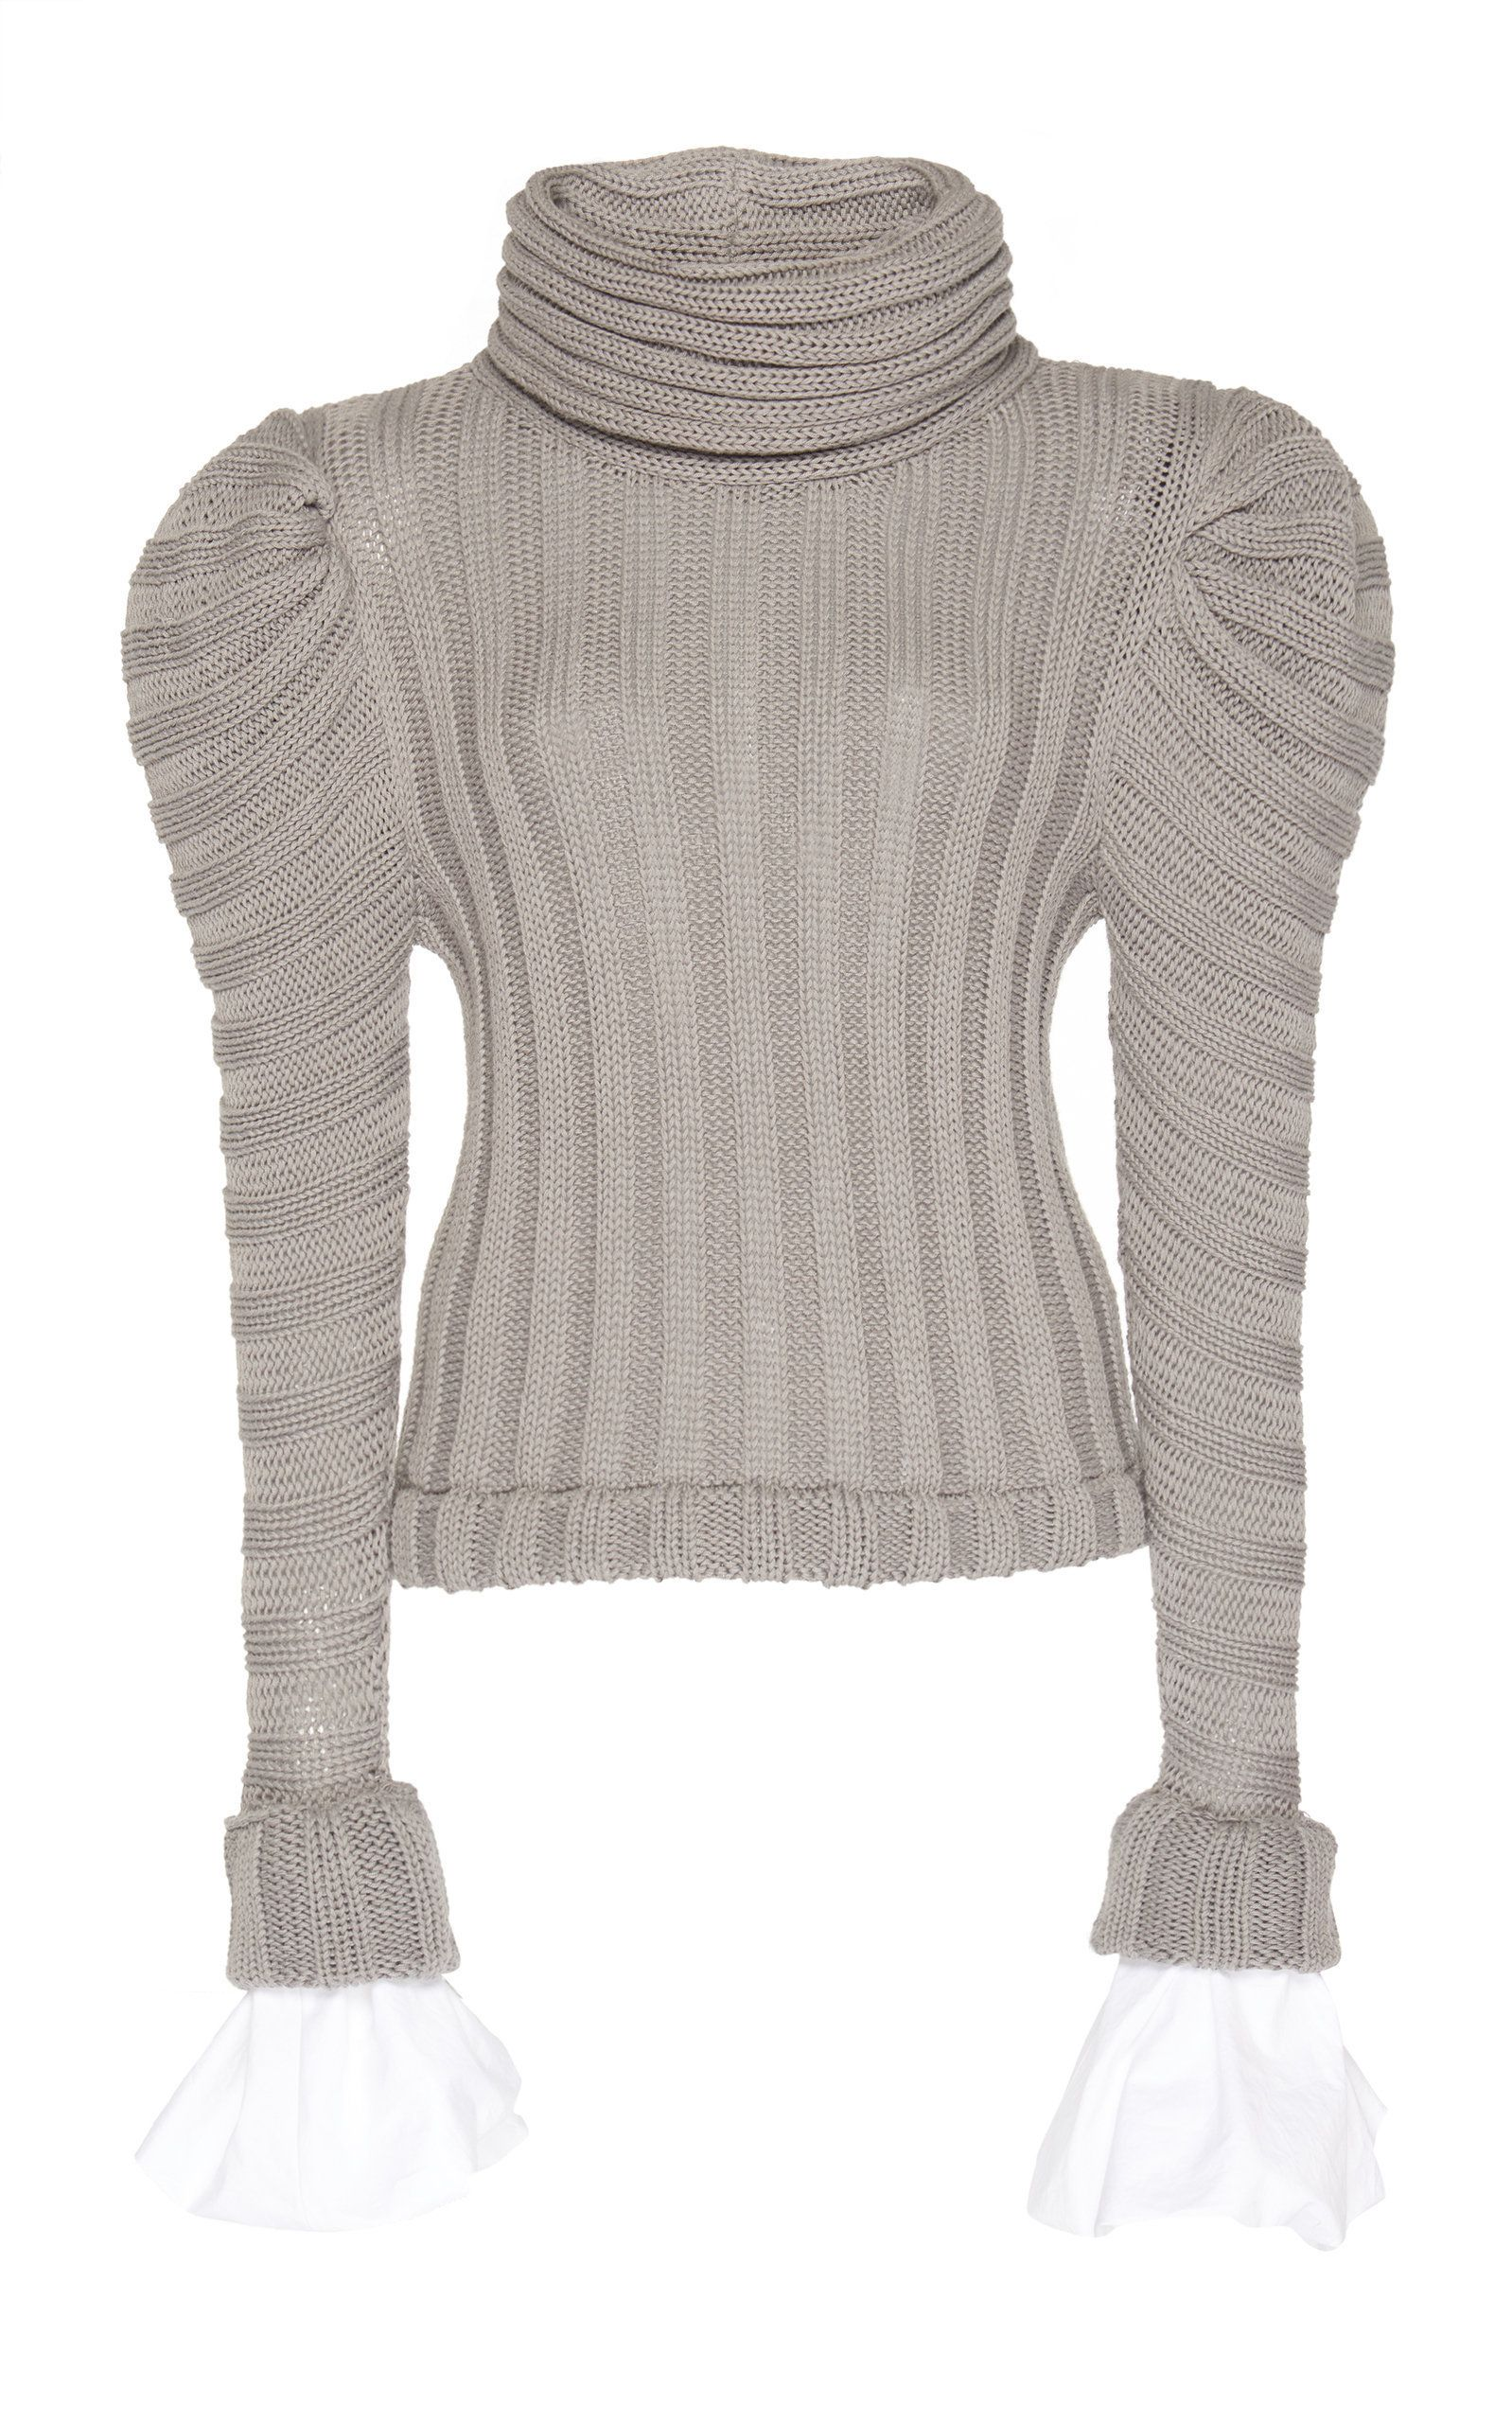 By Now Turtleneck Available On Moda Ribbed Cotton Ortiz Operandi Countess Johanna Of Blend Greystoke FXPwPYvz